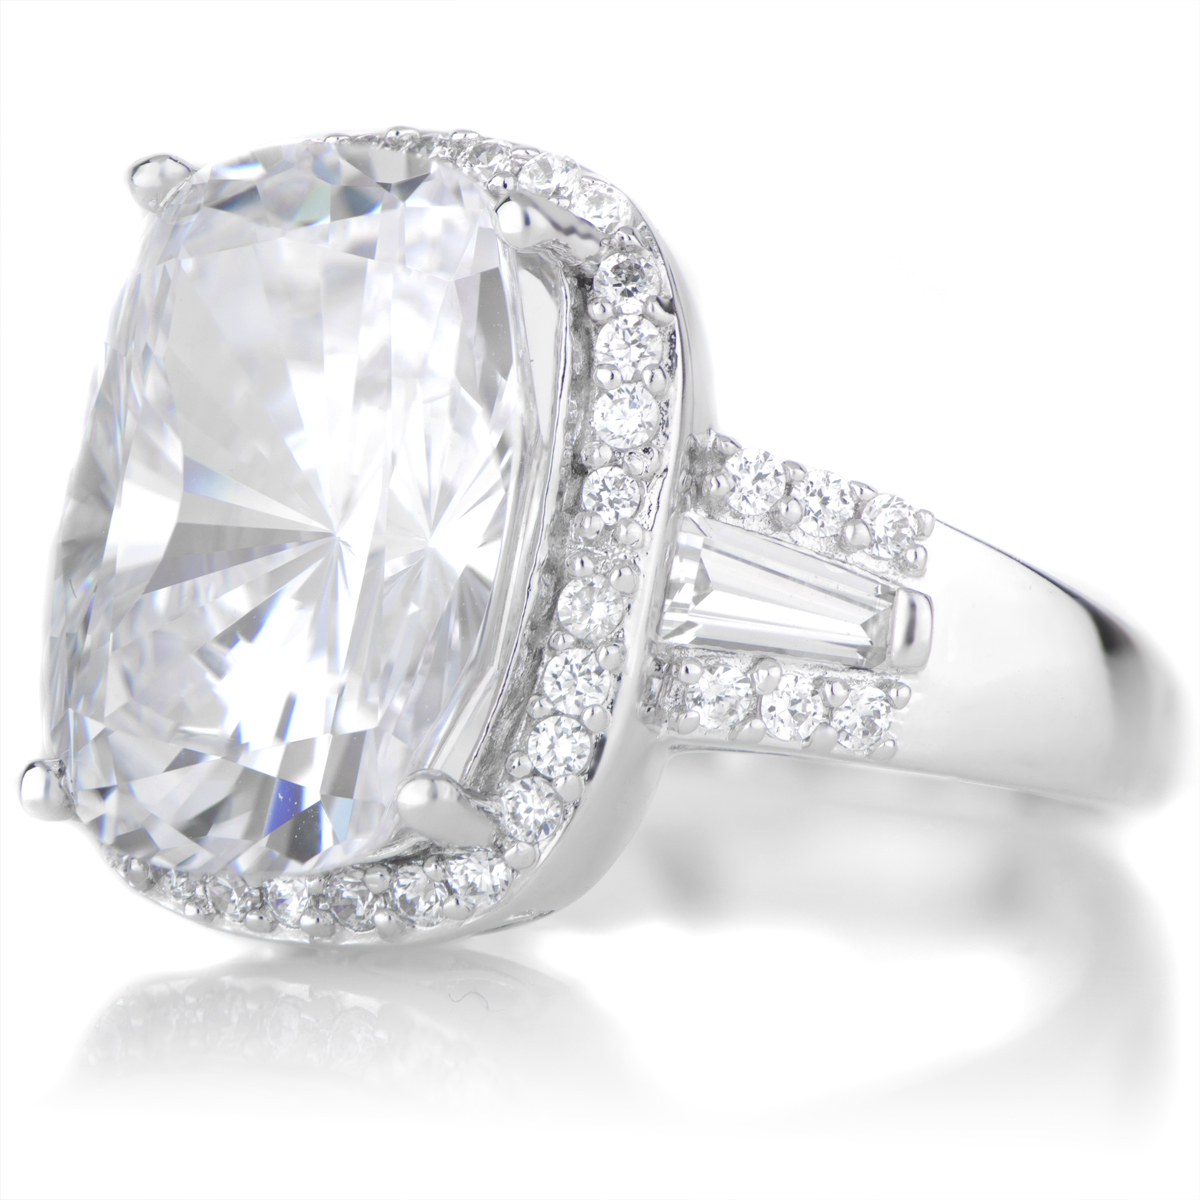 Maita s 5 5 ct Cushion Cut CZ Engagement Ring